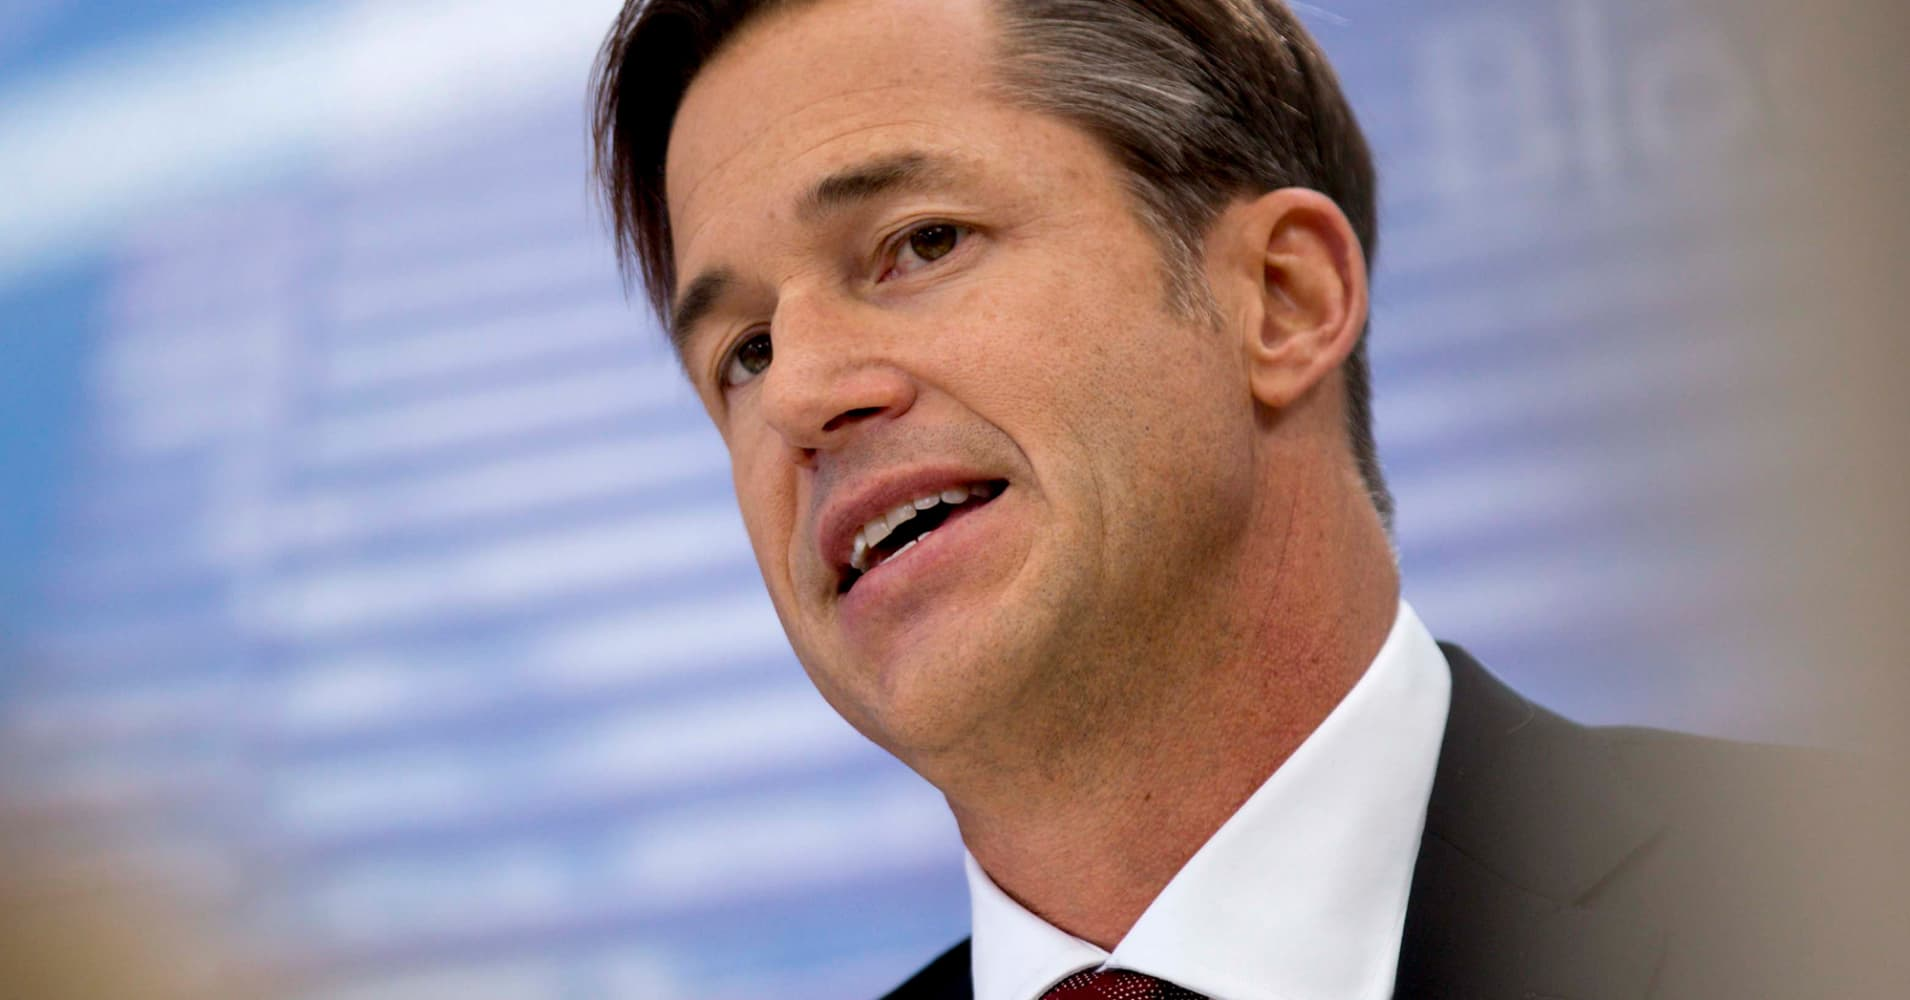 Zillow Makes a Big Bet on Flipping Homes. New CEO Could 'Make this Gamble Work': RBC's Mahaney